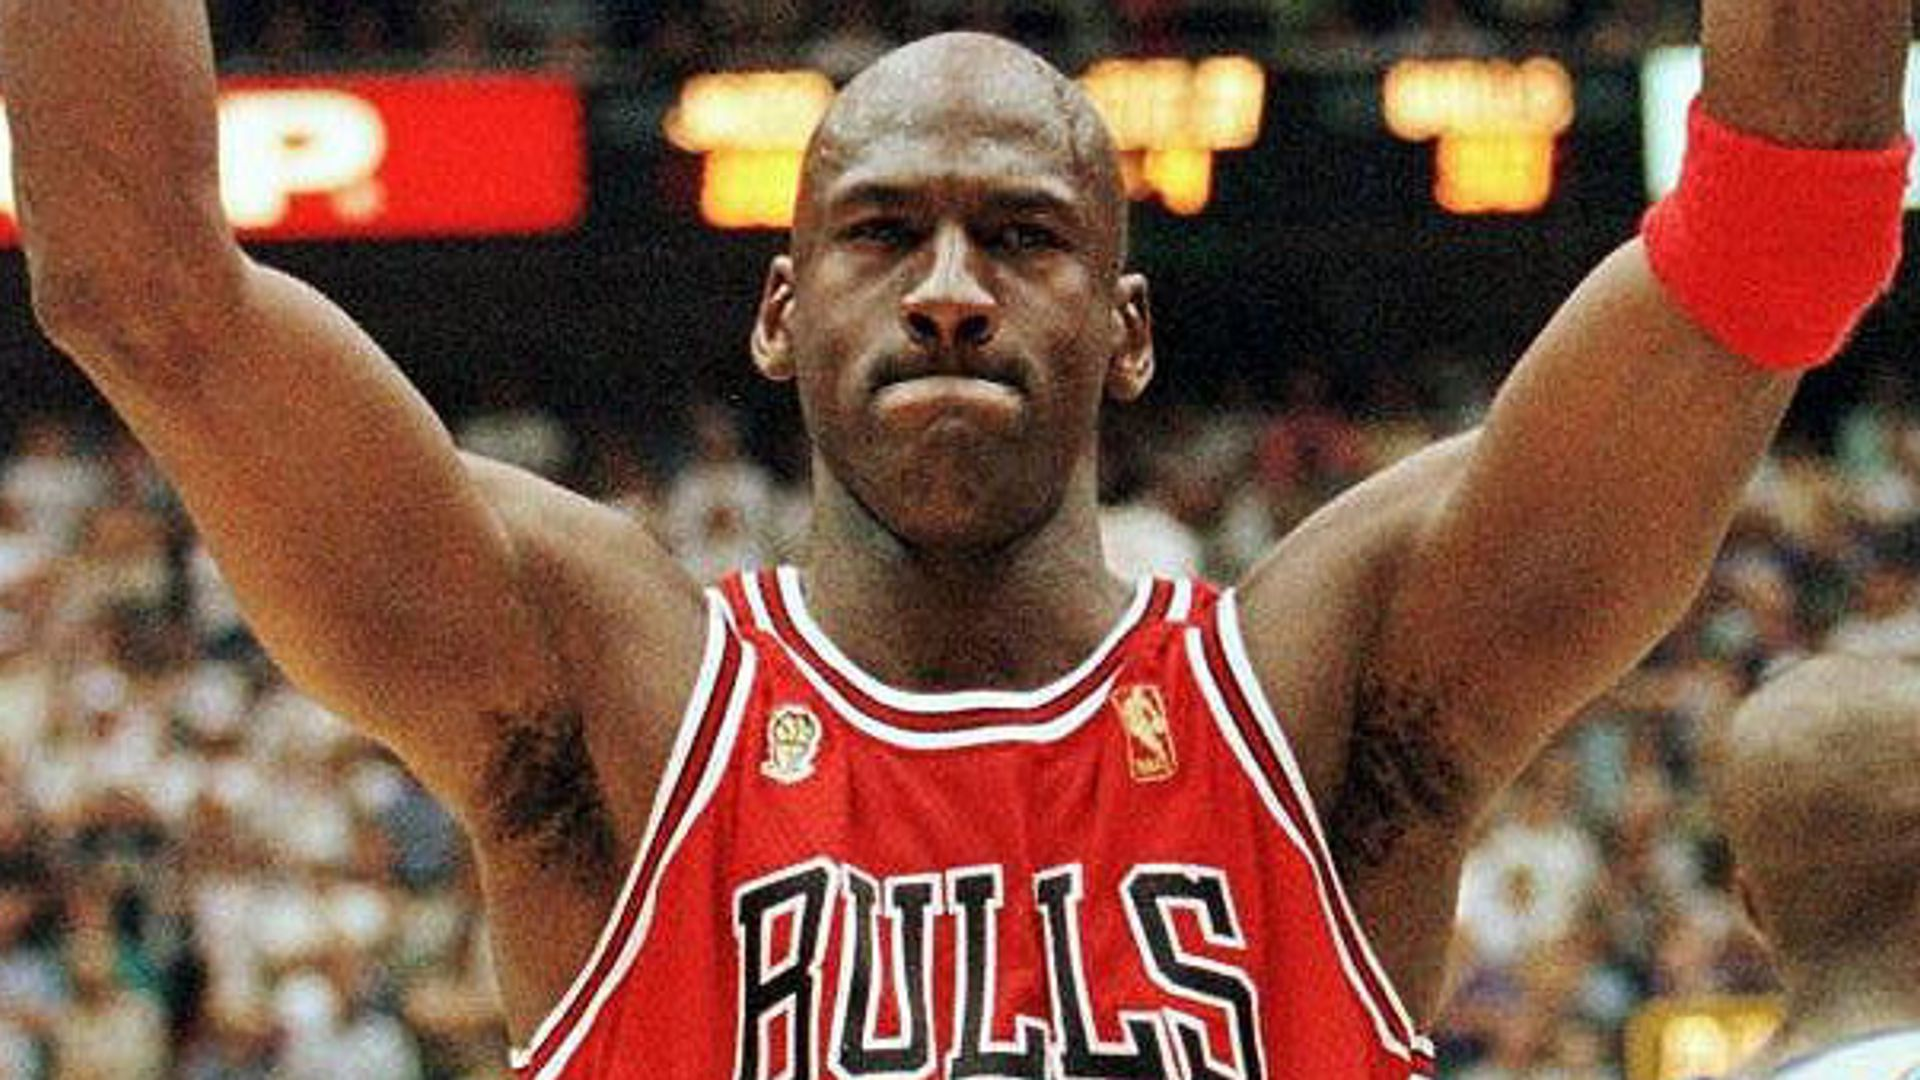 Heatcheck: Would Jordan average 45 in today's NBA?